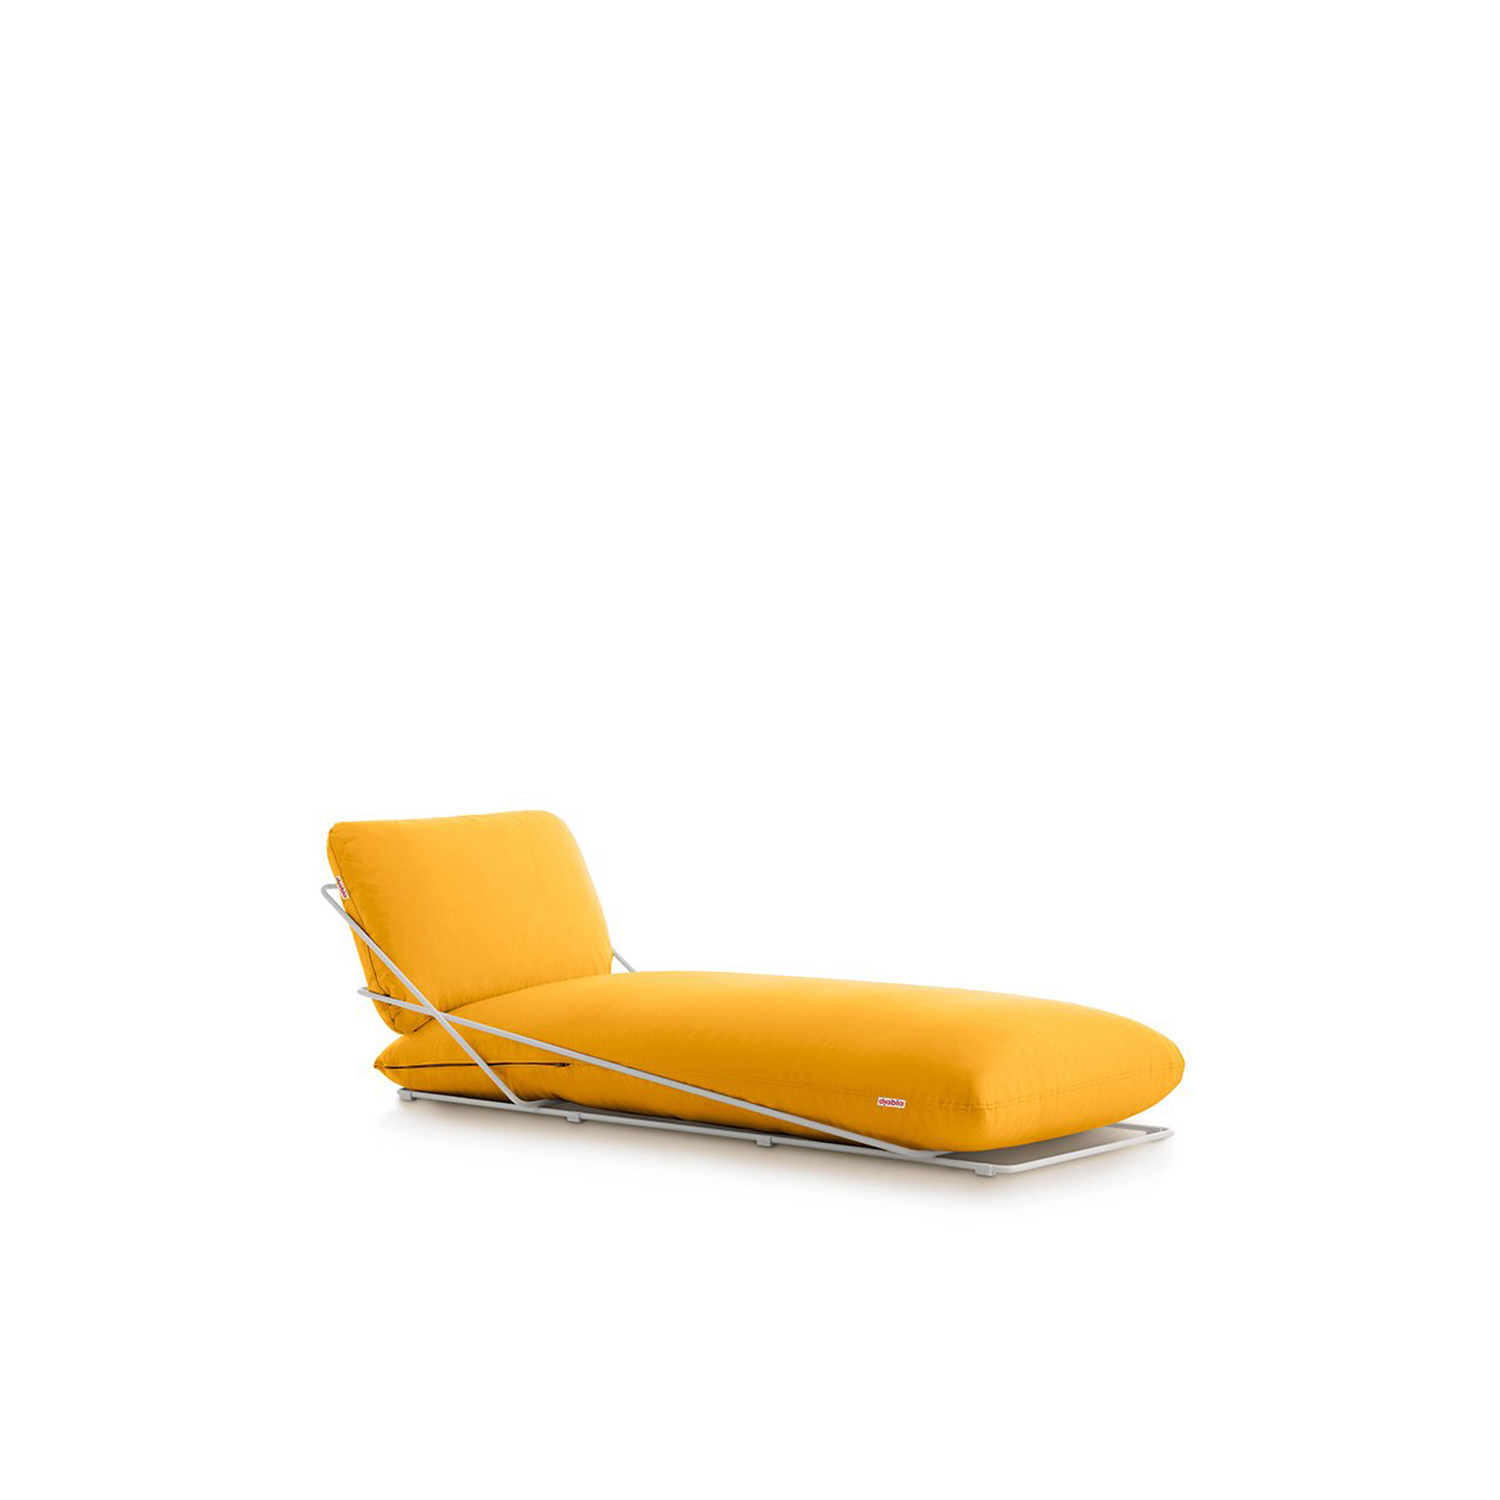 Valentina Chaise Longue - <p>The Valentina Outdoor collection has a casual and laid-back character that is at the same time elegant and colourful. It's the most genuine expression of Diabla's style. Its creator, Alejandra Gandía-Blasco Lloret, decided to design a seat using just two cushions and keeping other elements to the minimum. And that's how not just a whole family of sofas but also a highly chic lounger came to be.</p>